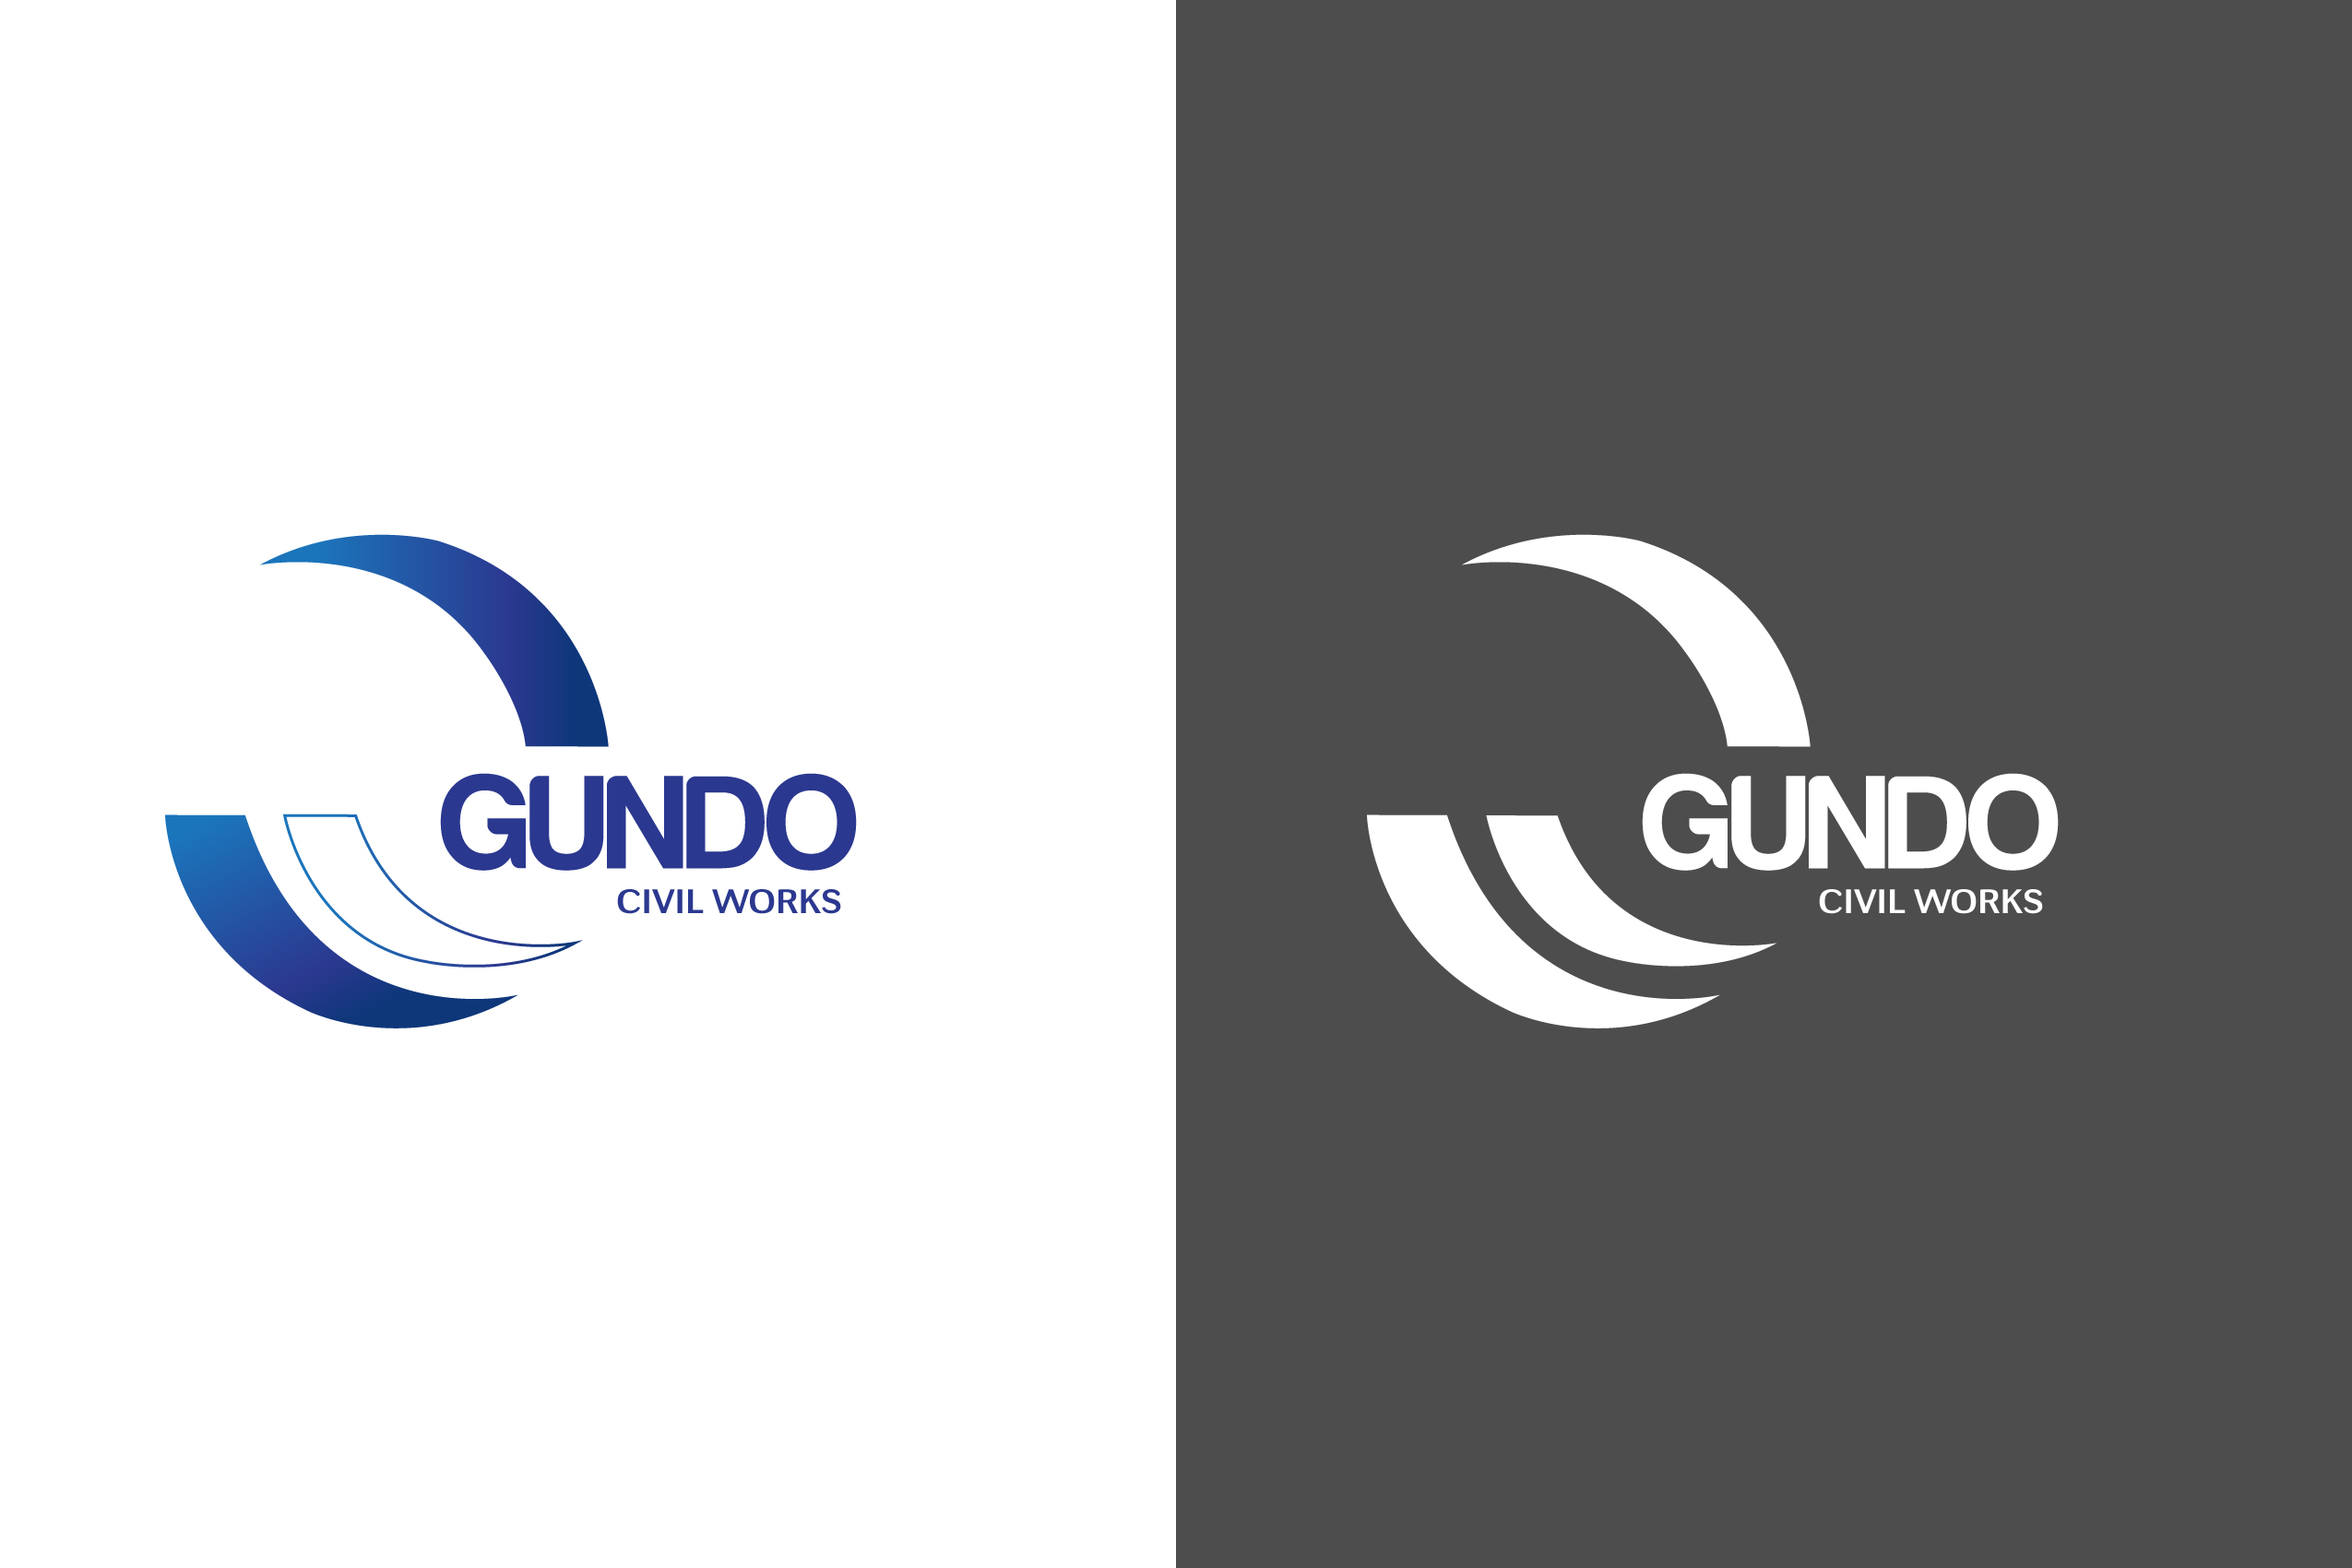 Gundo-Civil-Works Logo